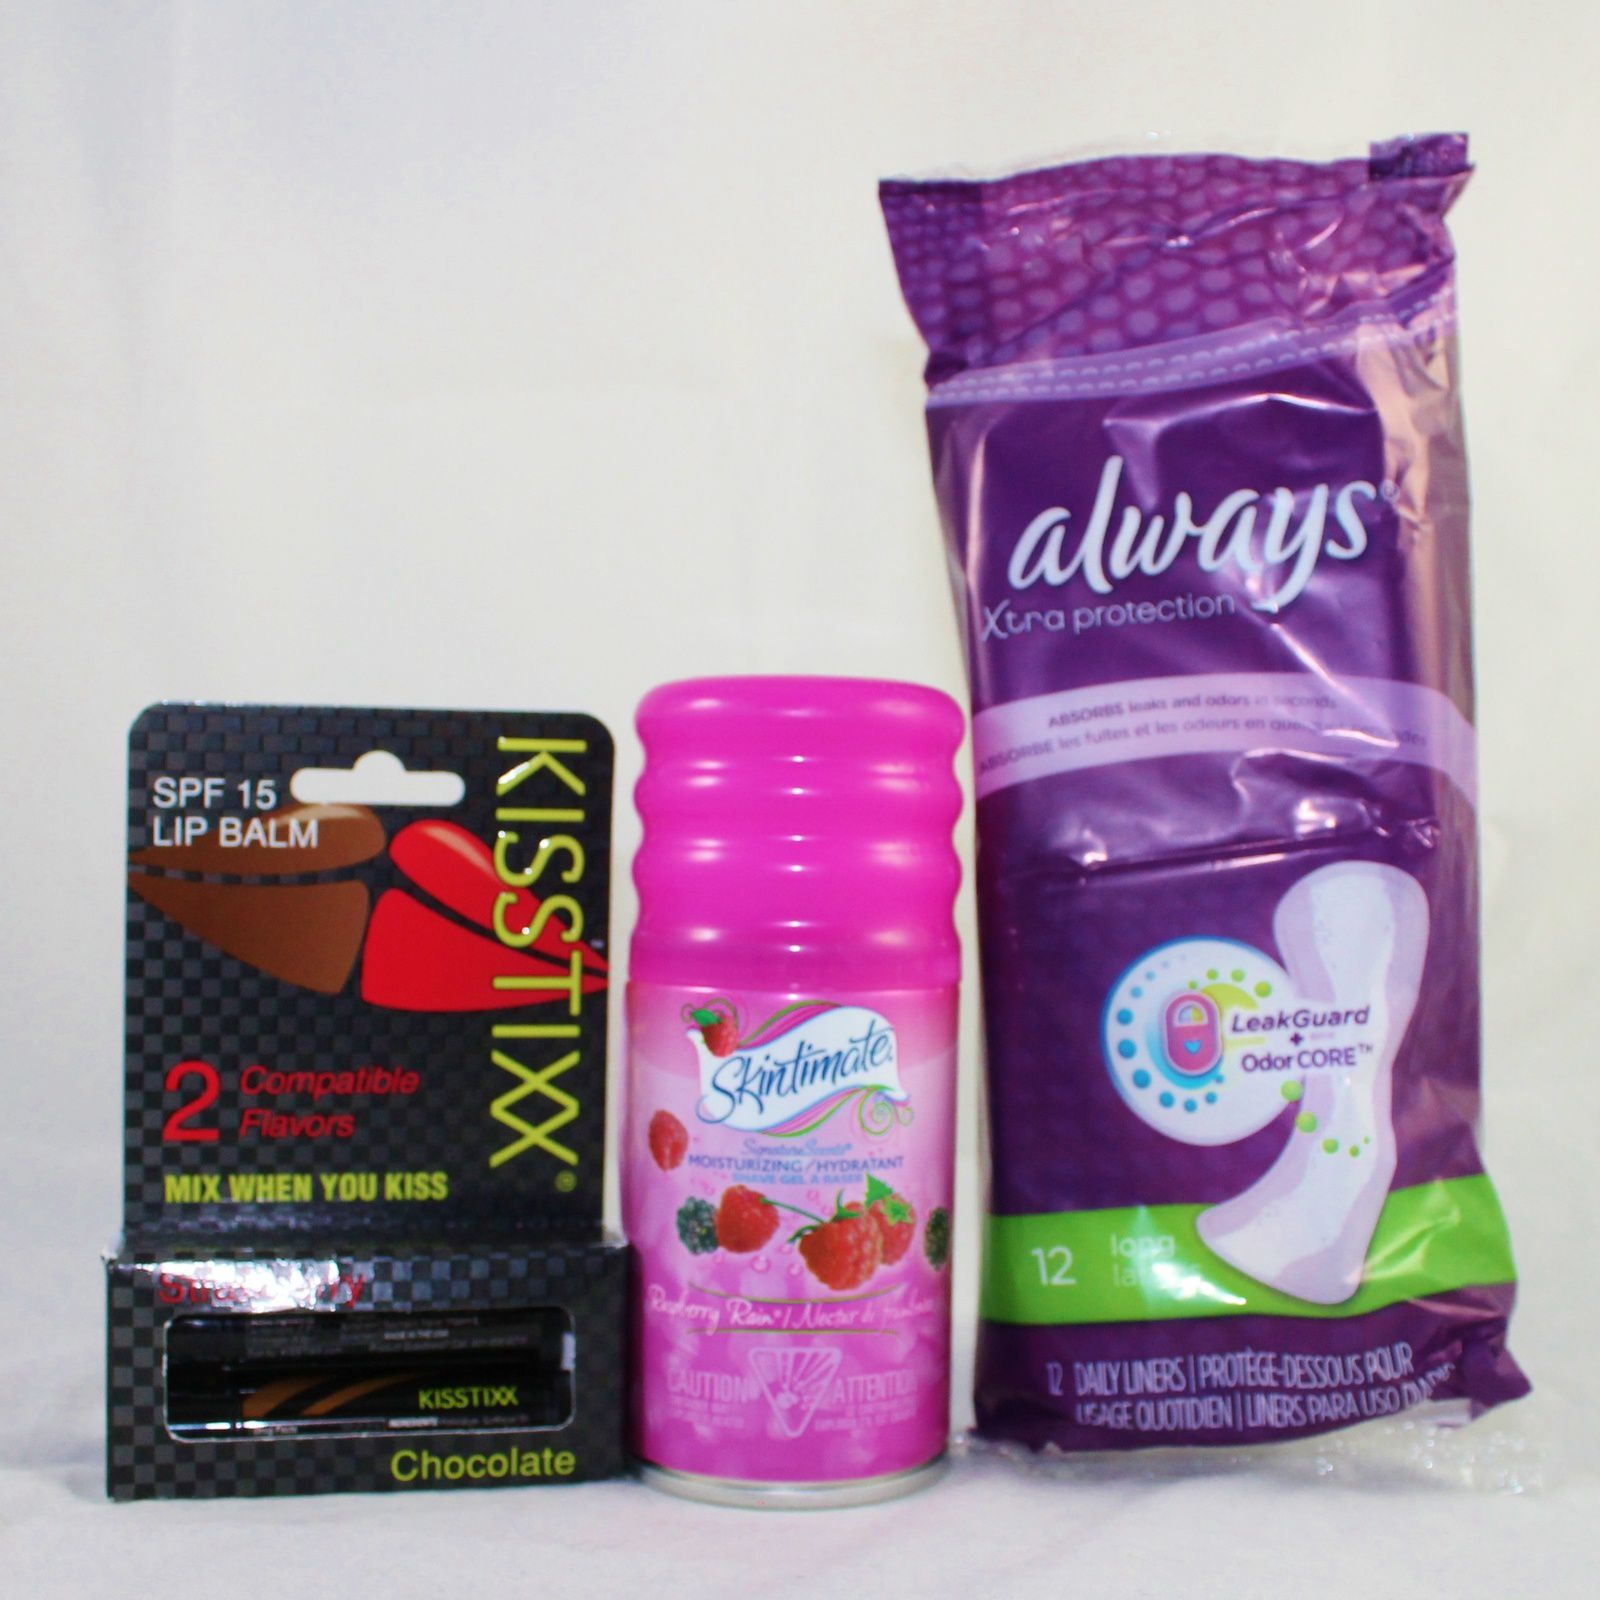 KISSTIXX Lip Balms ($6), Skintimate Shave Gel ($2), Always Xtra protection Long Daily Liners ($1.5)